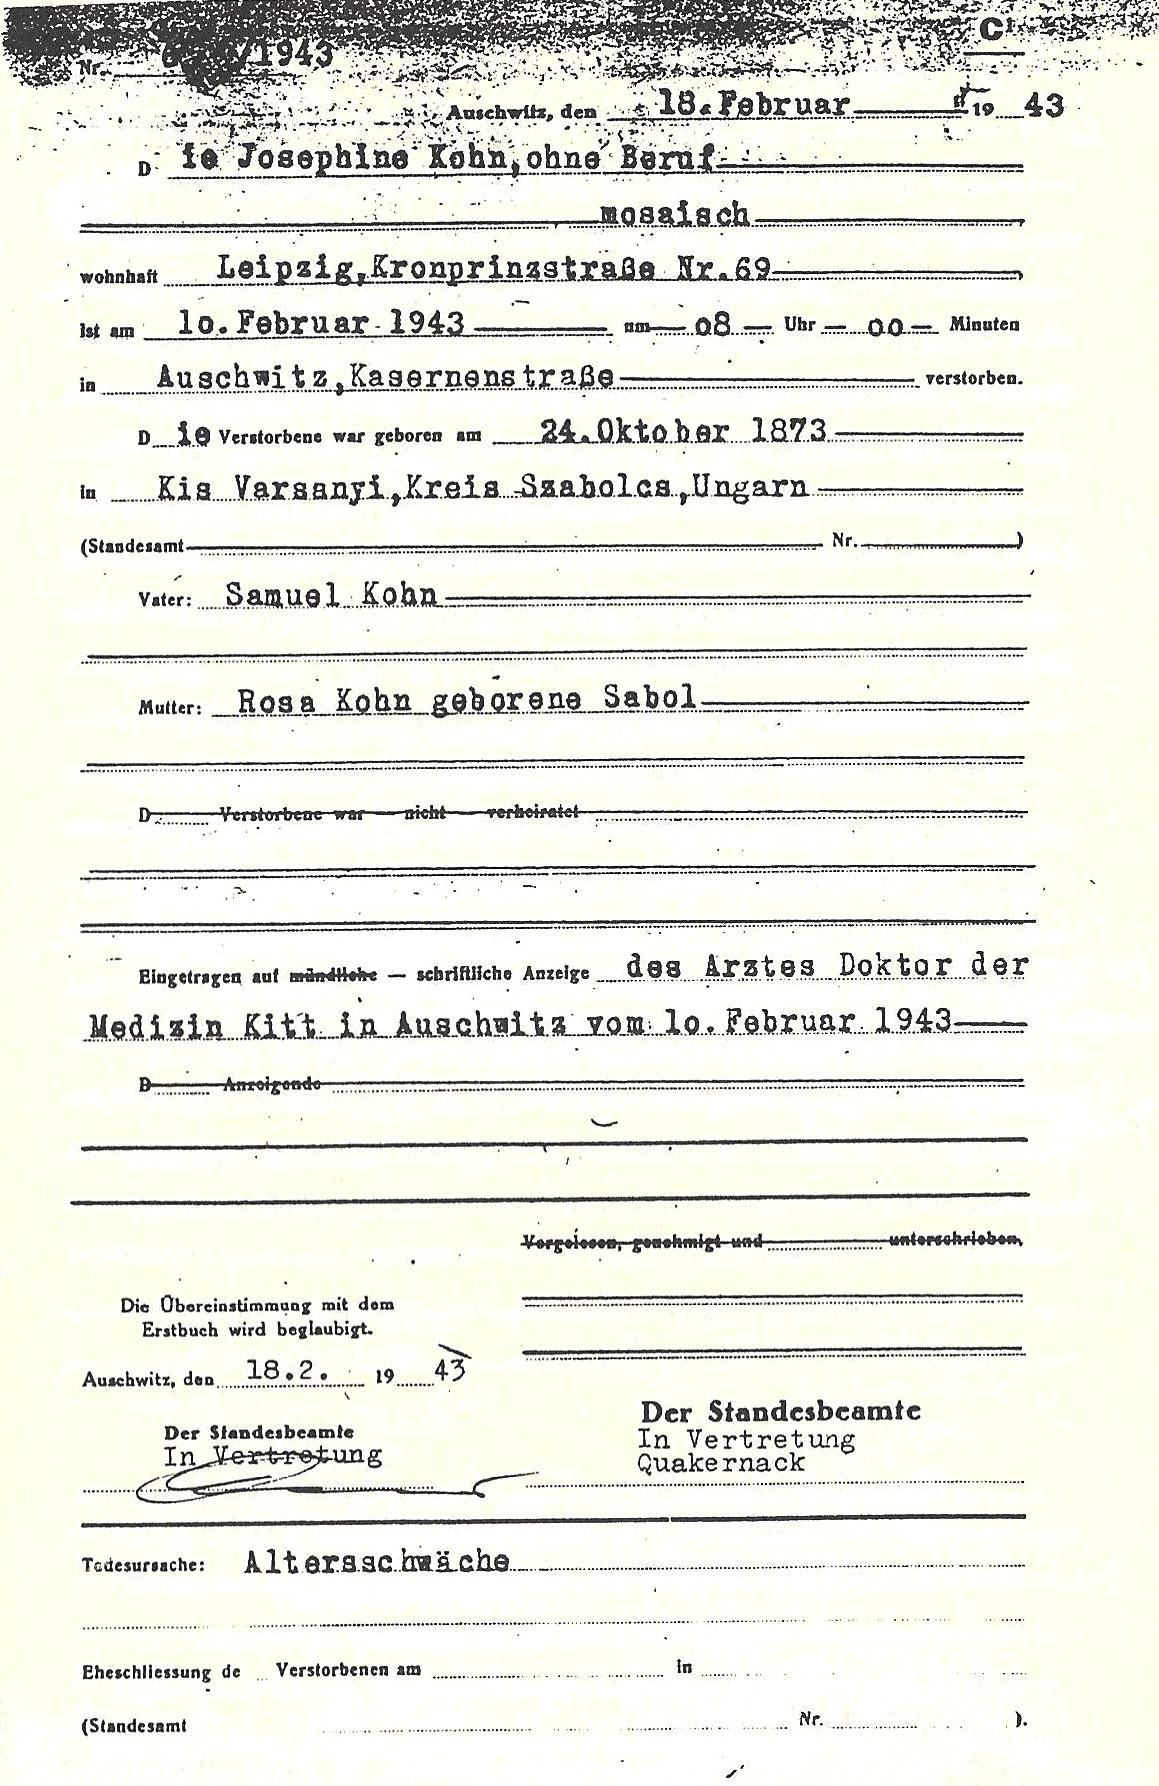 Codoh Pages From The Auschwitz Death Registry Volumes